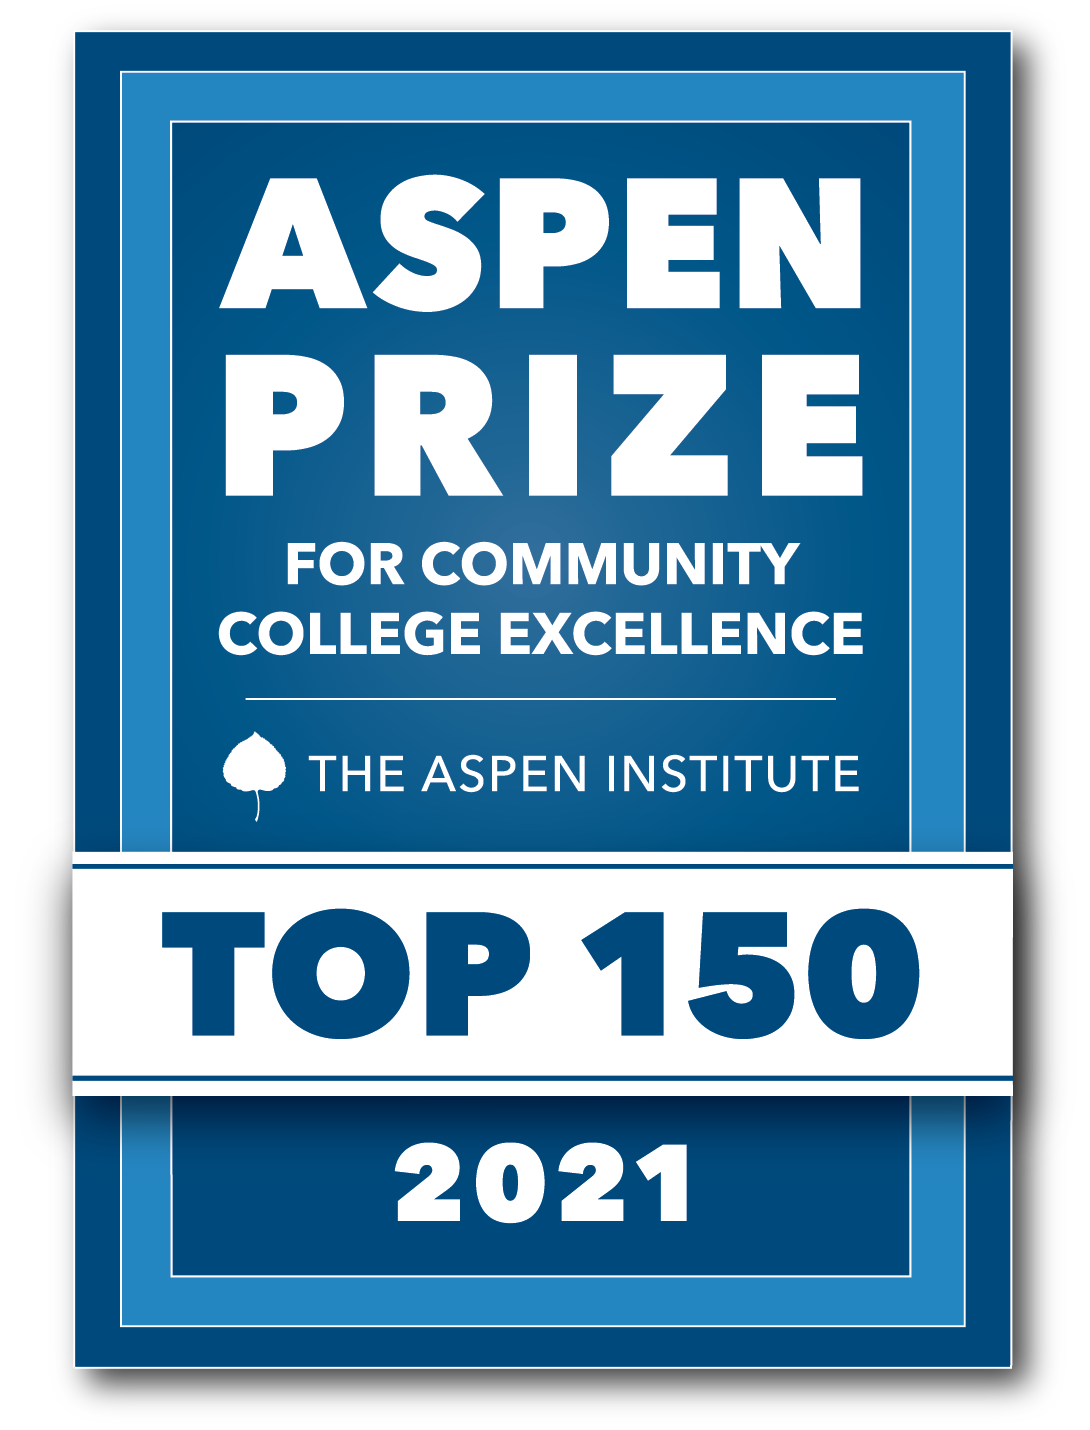 Aspen Prize for Community College Excellence The Aspen Institute Top 150 2021